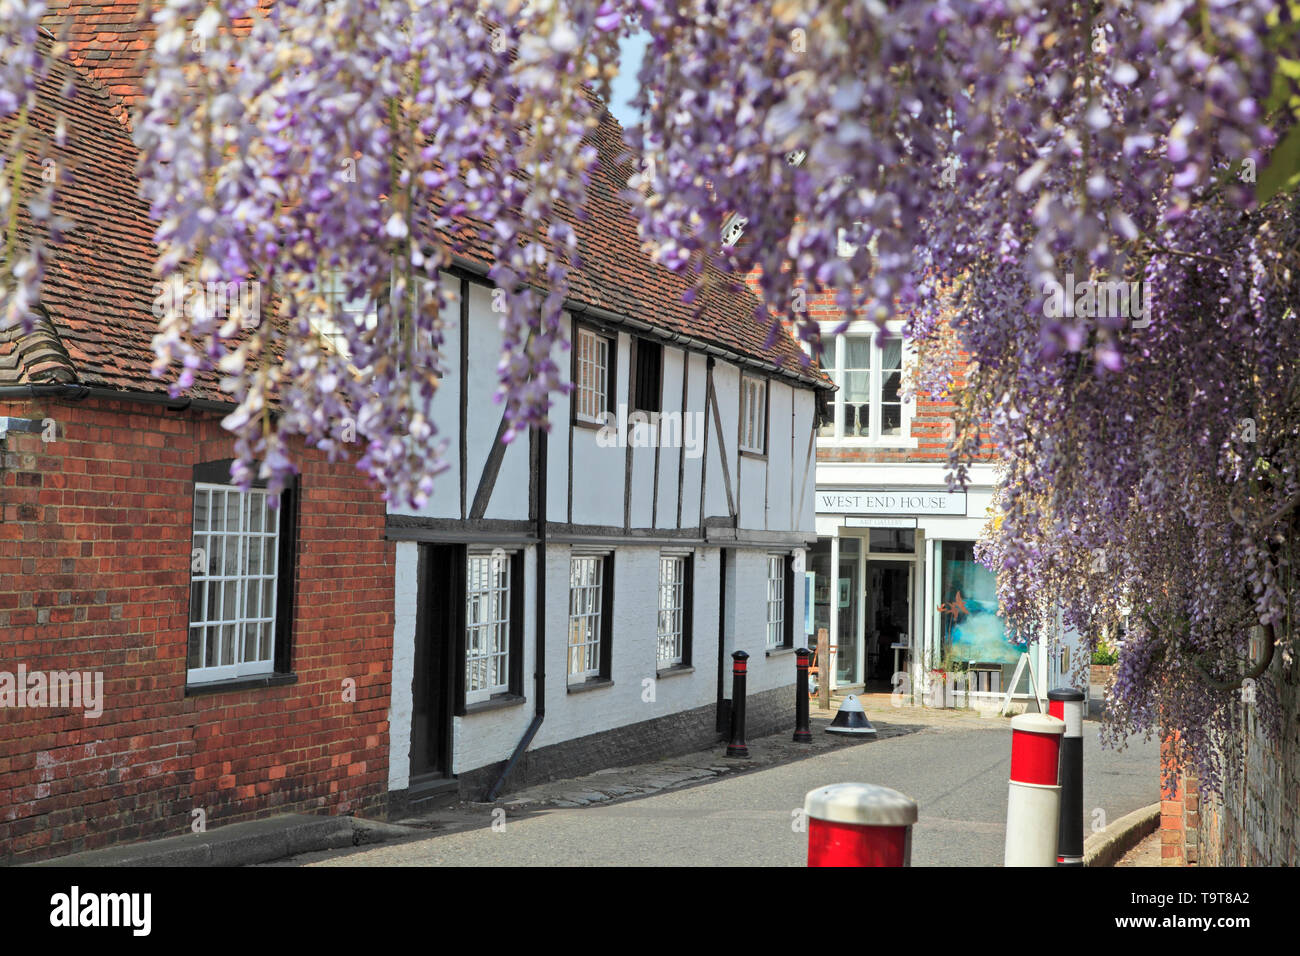 Wisteria framing Tudor cottages in the picturesque Kentish Village of Smarden, Kent, UK - Stock Image